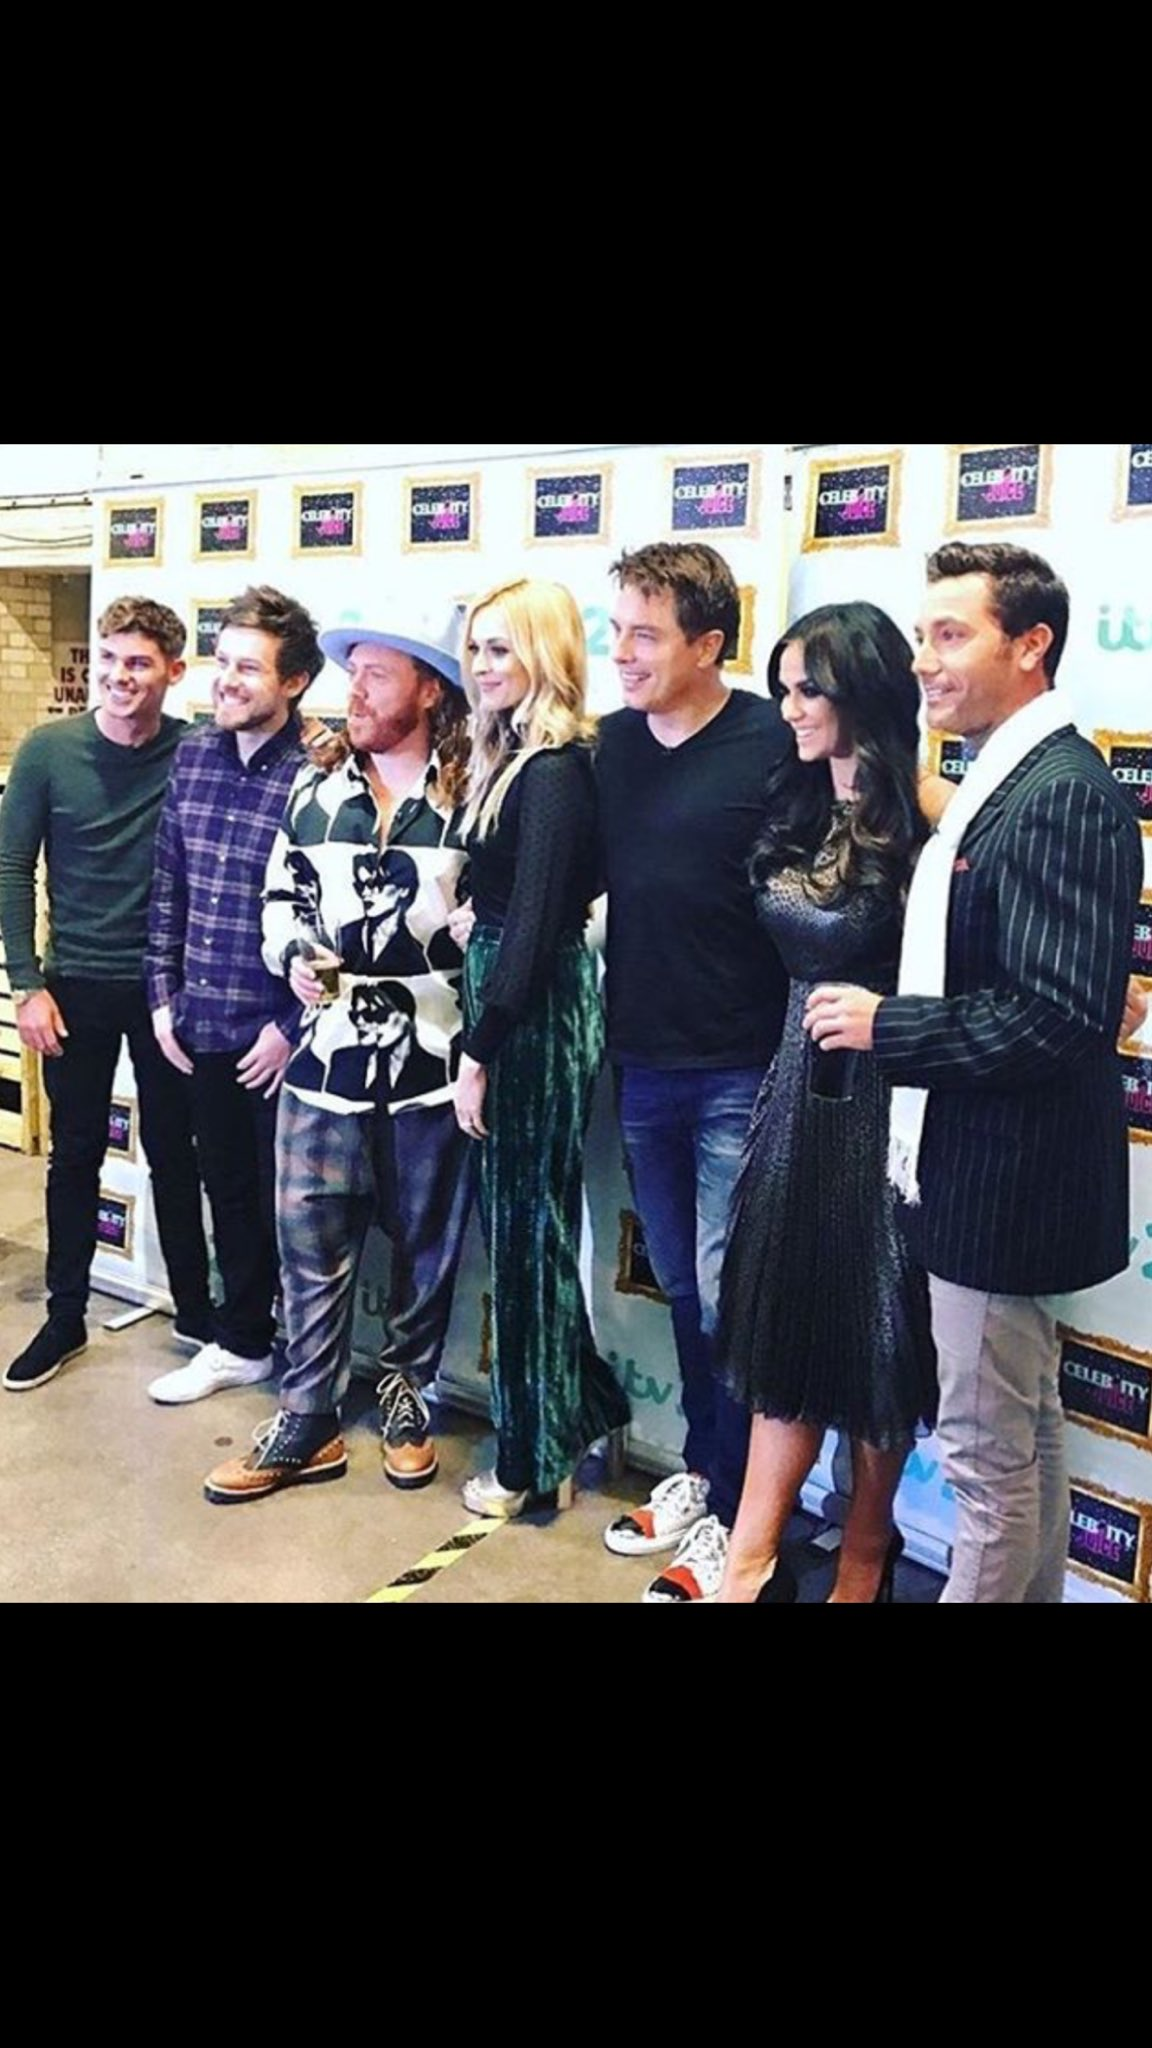 Tonight's line up on @CelebJuice 10pm @itv2 https://t.co/vthSMpanms